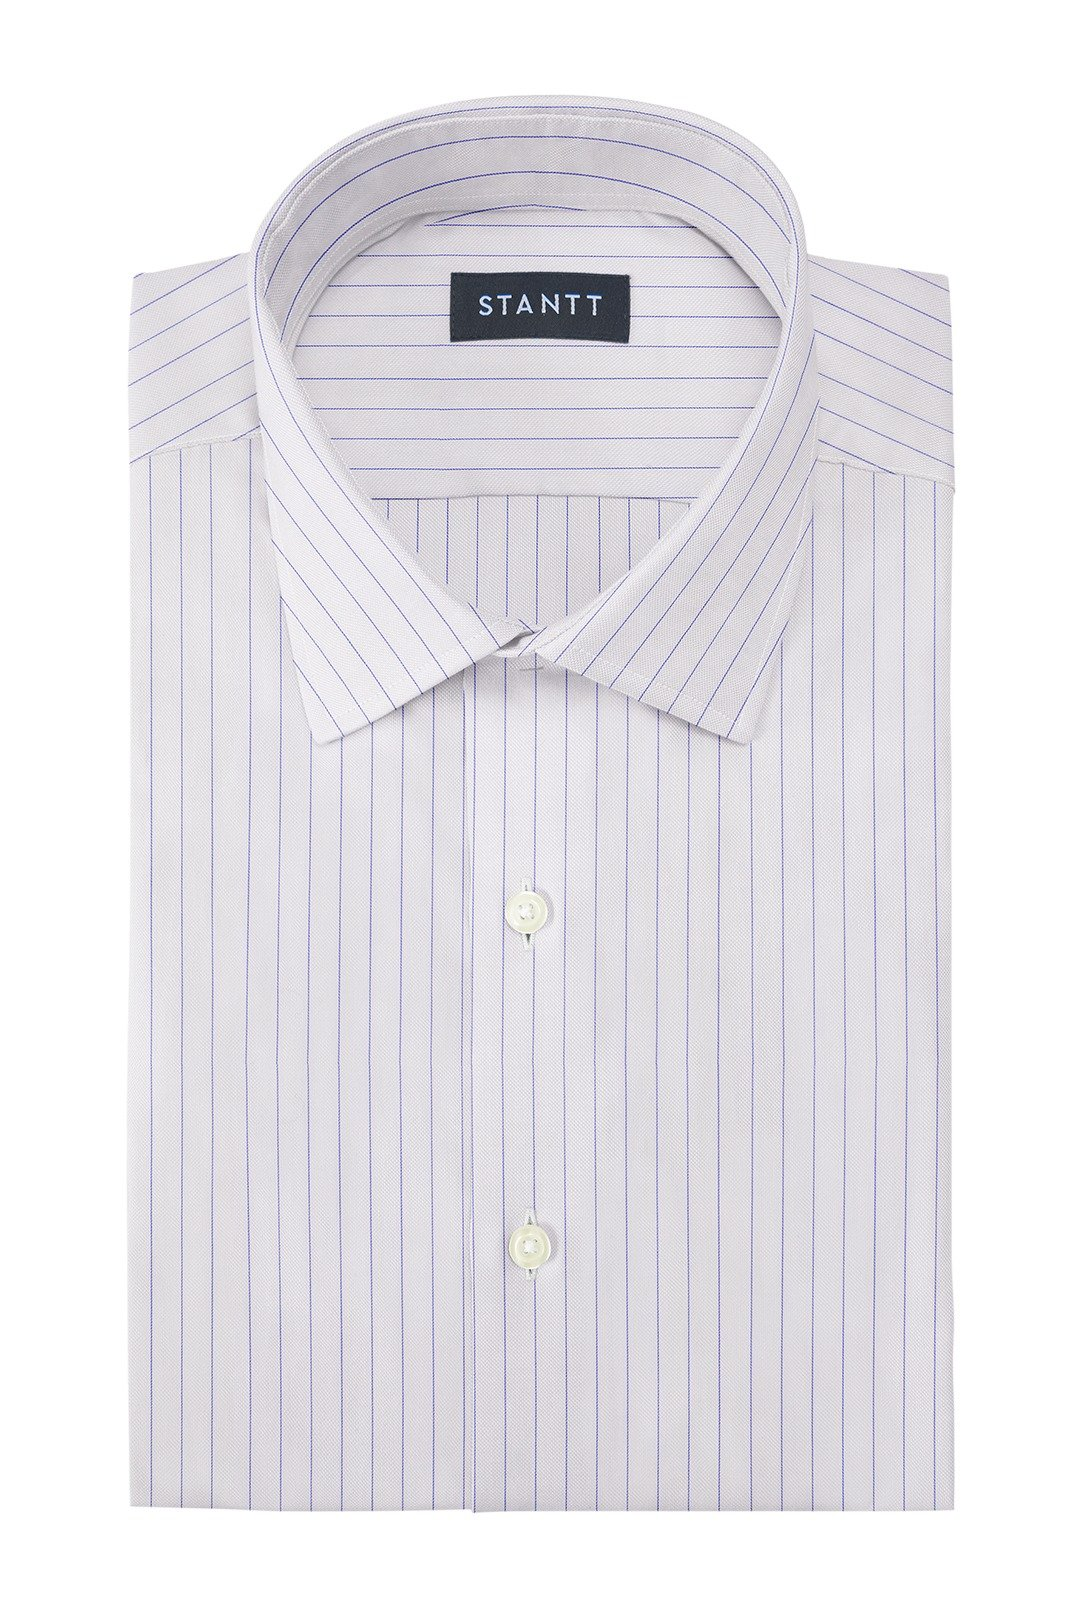 Wrinkle-Resistant Blue Hairline Stripe: Modified-Spread Collar, French Cuff